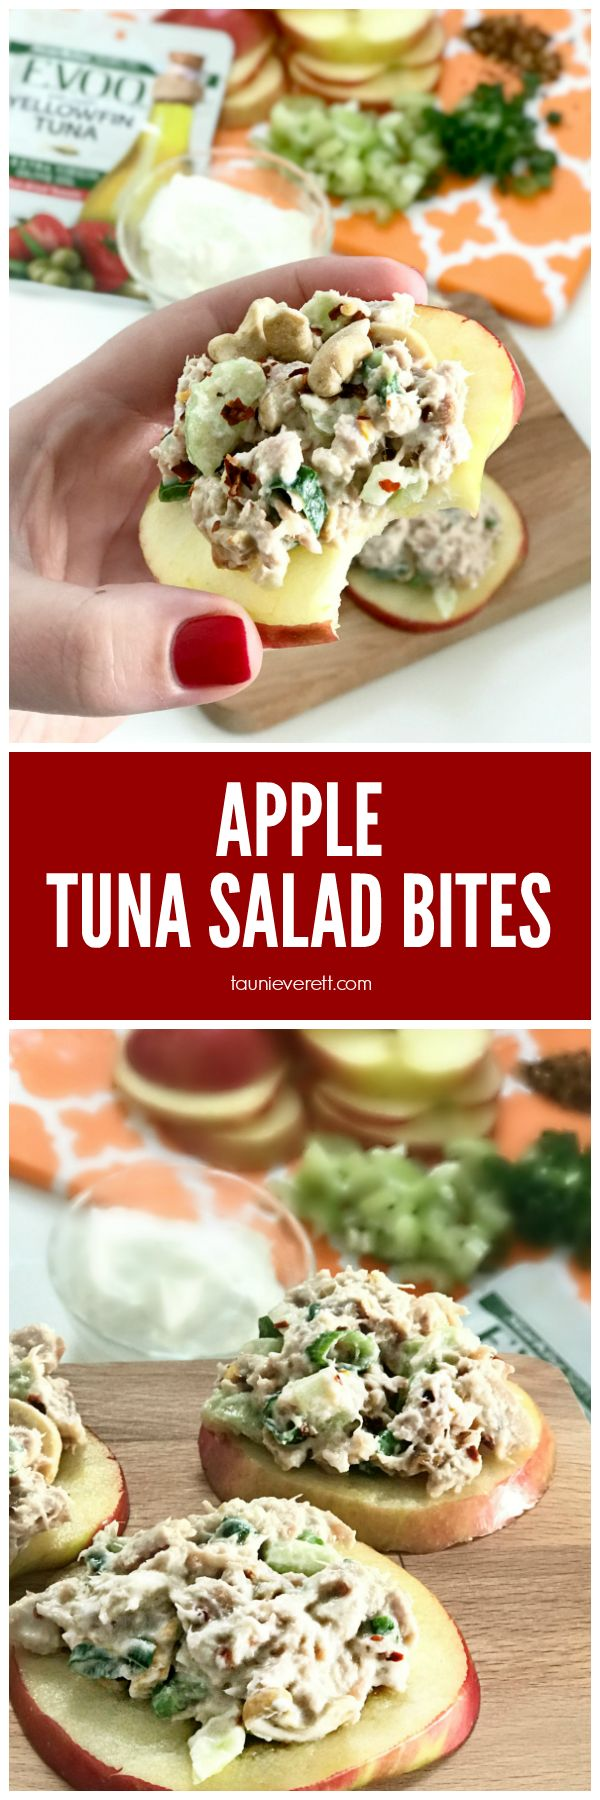 Healthy Apple Tuna Salad Bites. Yummy and ZERO Weight Watchers Points! #tuna #lunch #weightwatchers